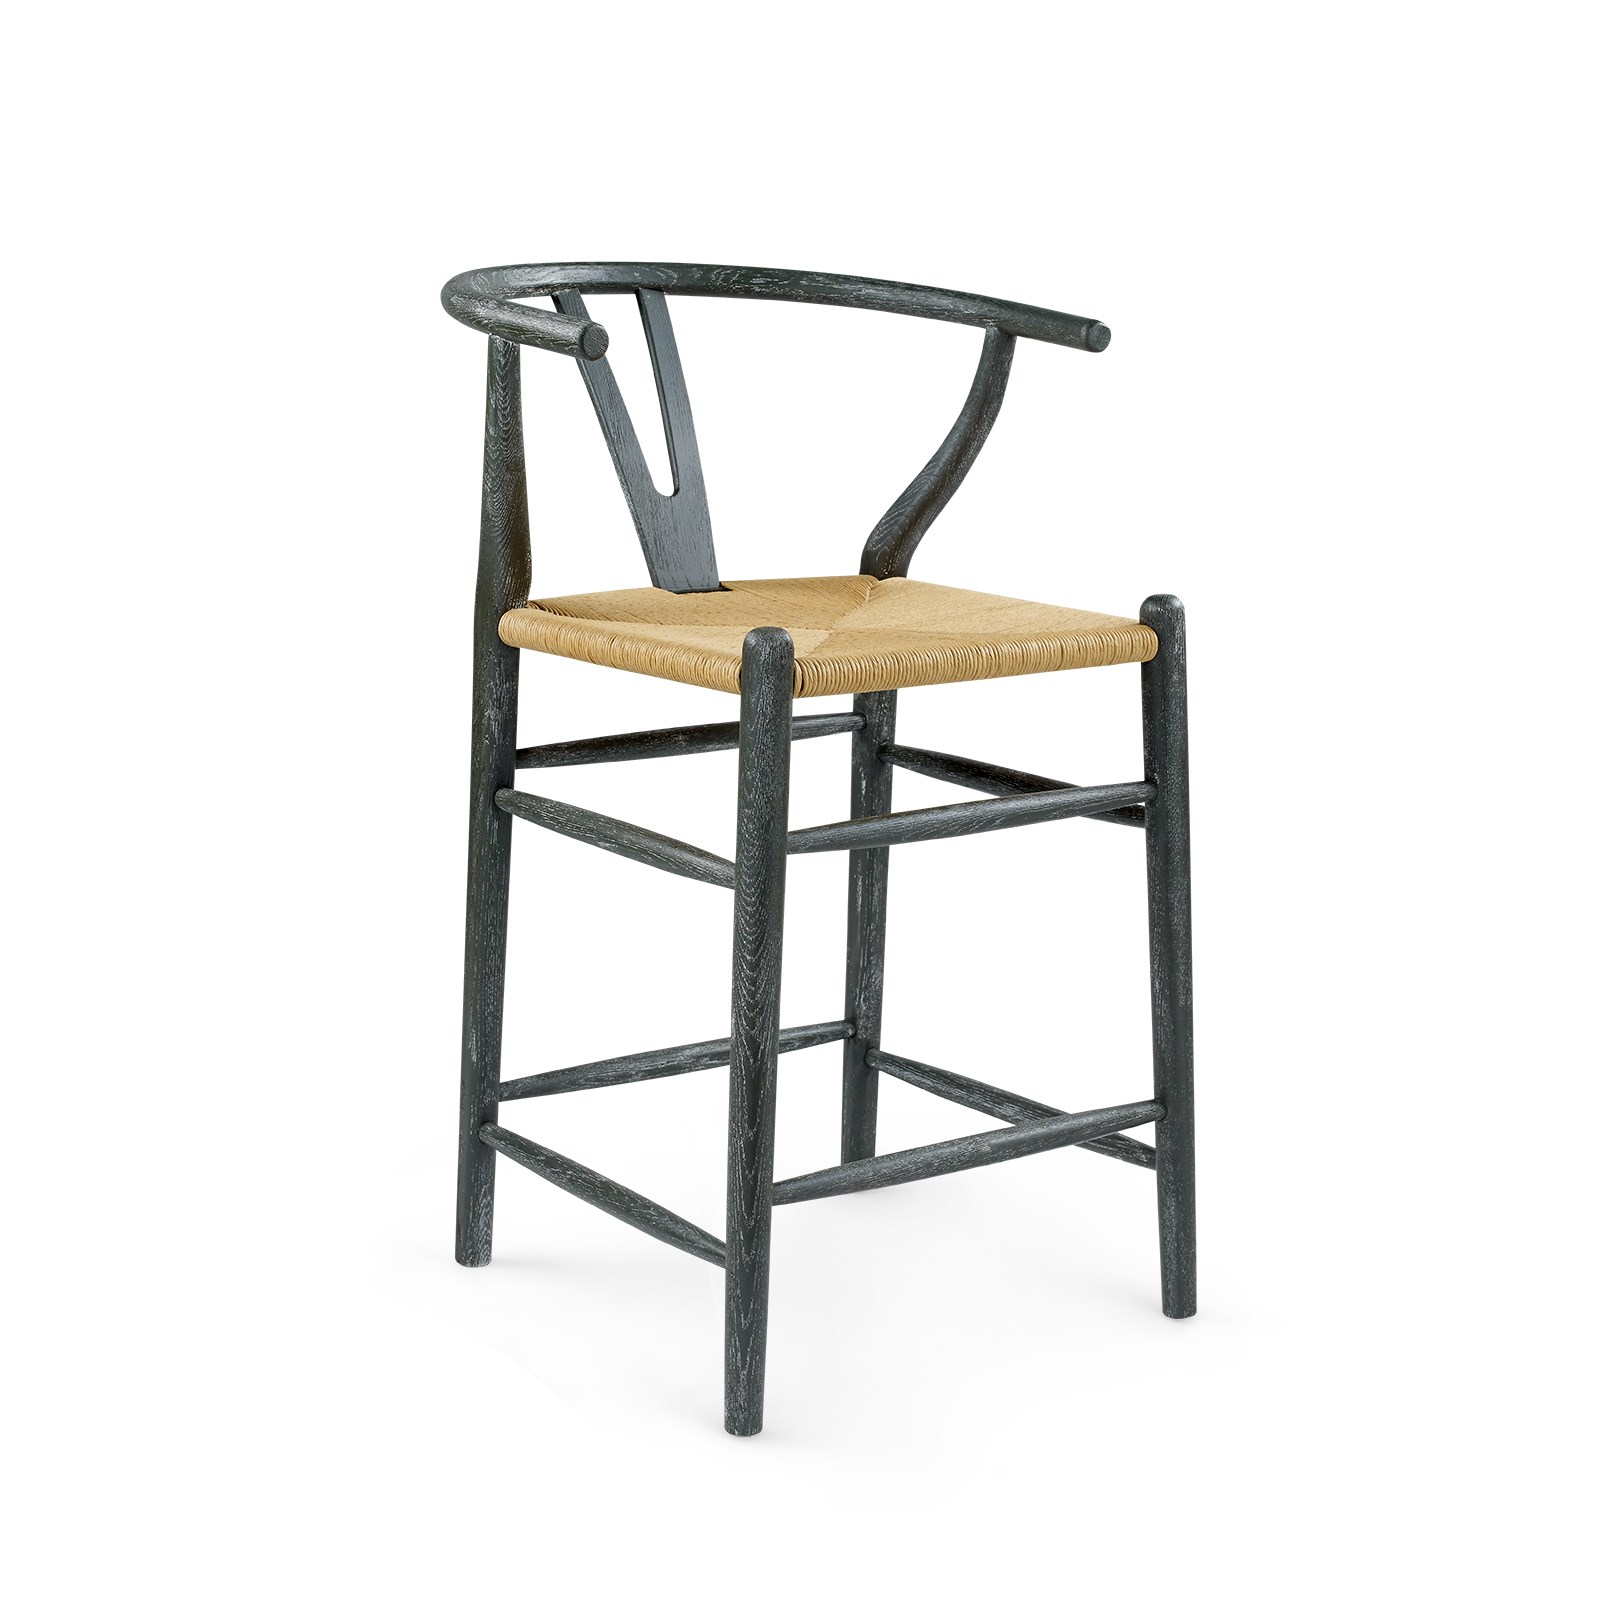 leather leg legs gray padded brown synthetic swivel with teak chrome dark stool varnished wood metal woven uplift superb sporty counter using stools